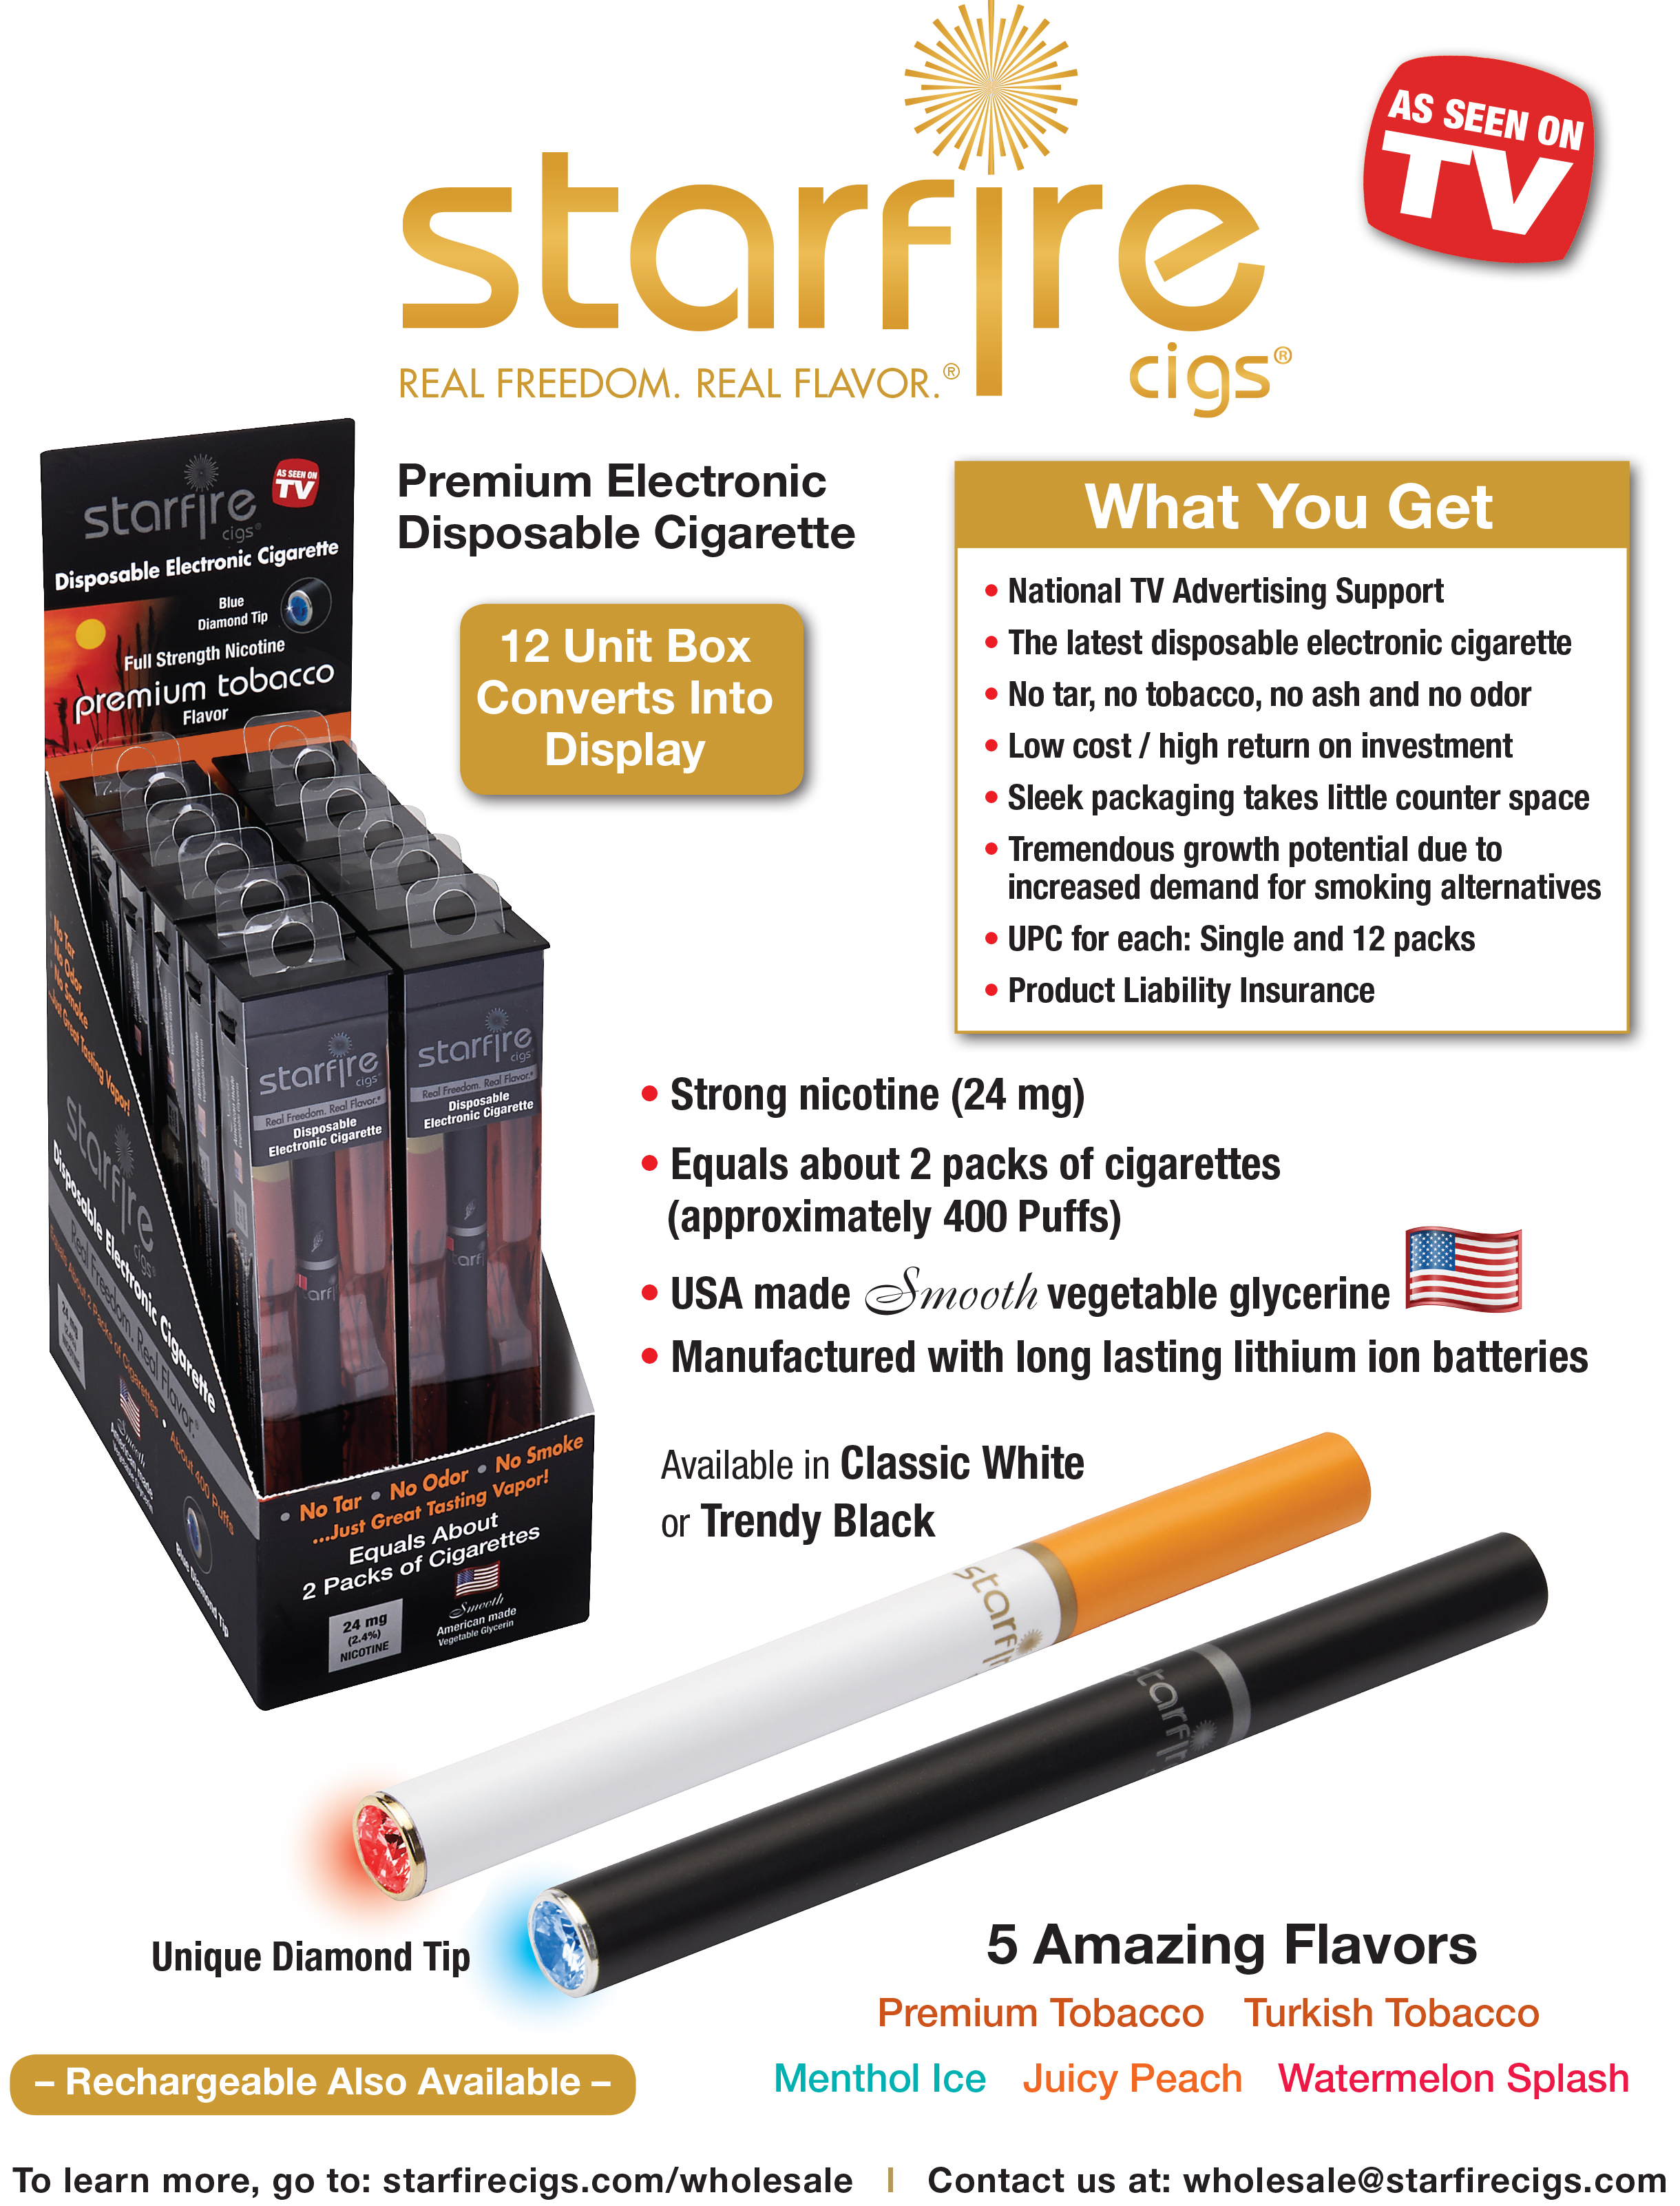 Starfire Cigs Premium Disposable Electronic Cigarettes